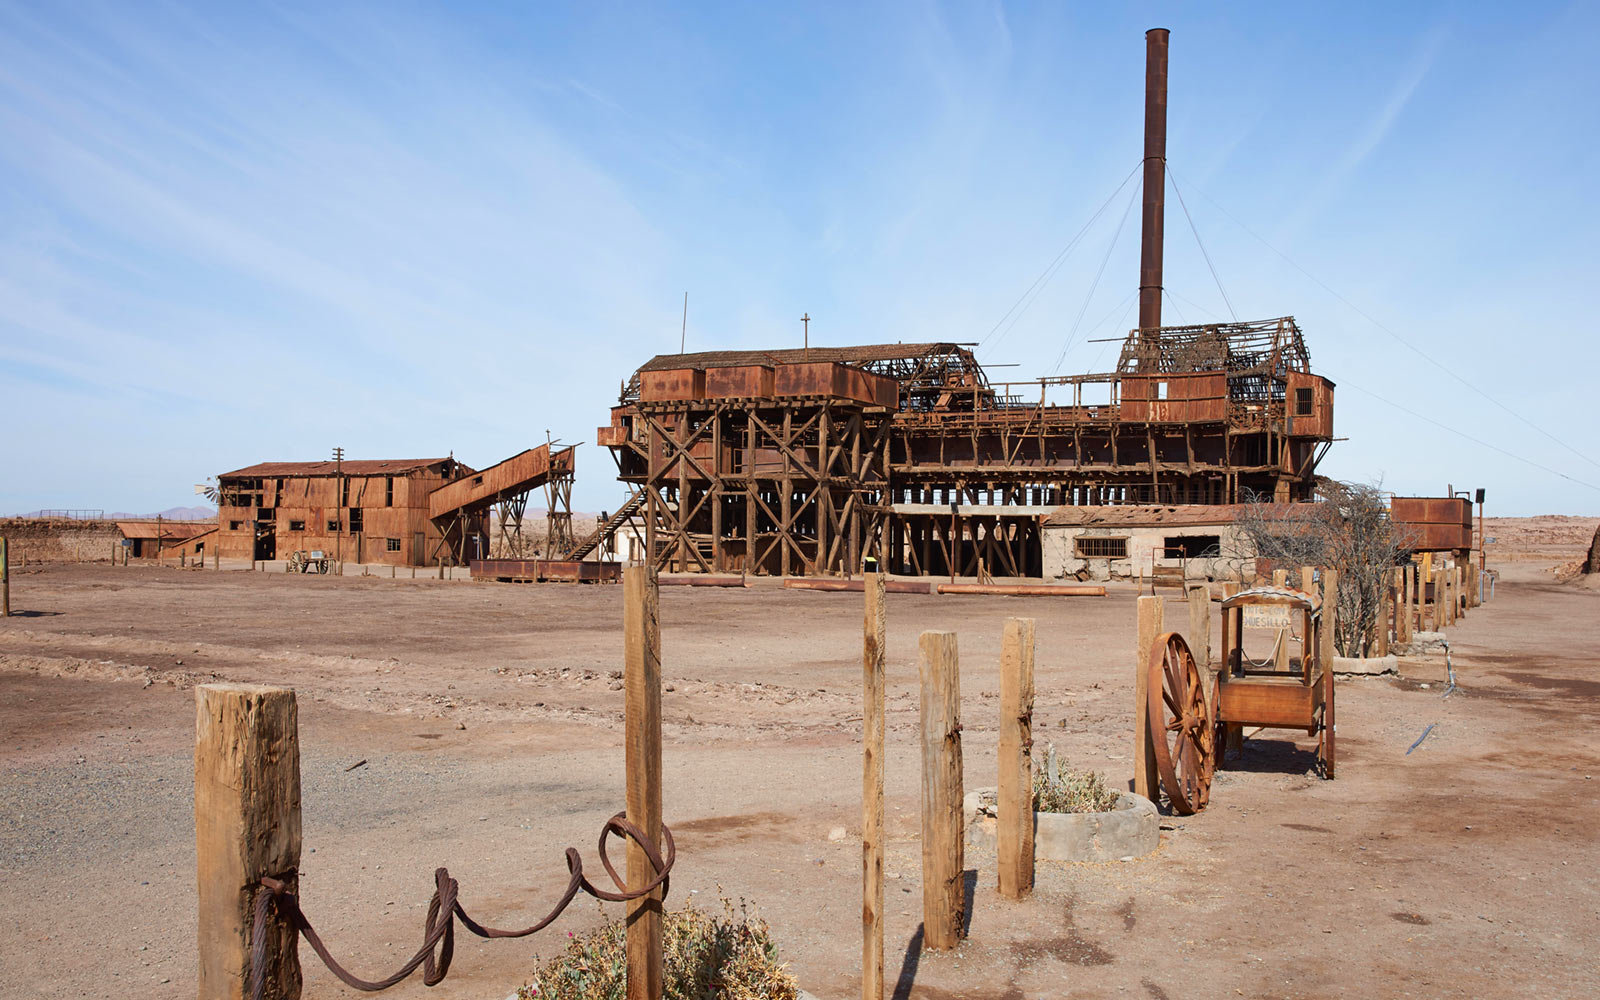 Humberstone and Santa Laura Saltpeter Works, Chile